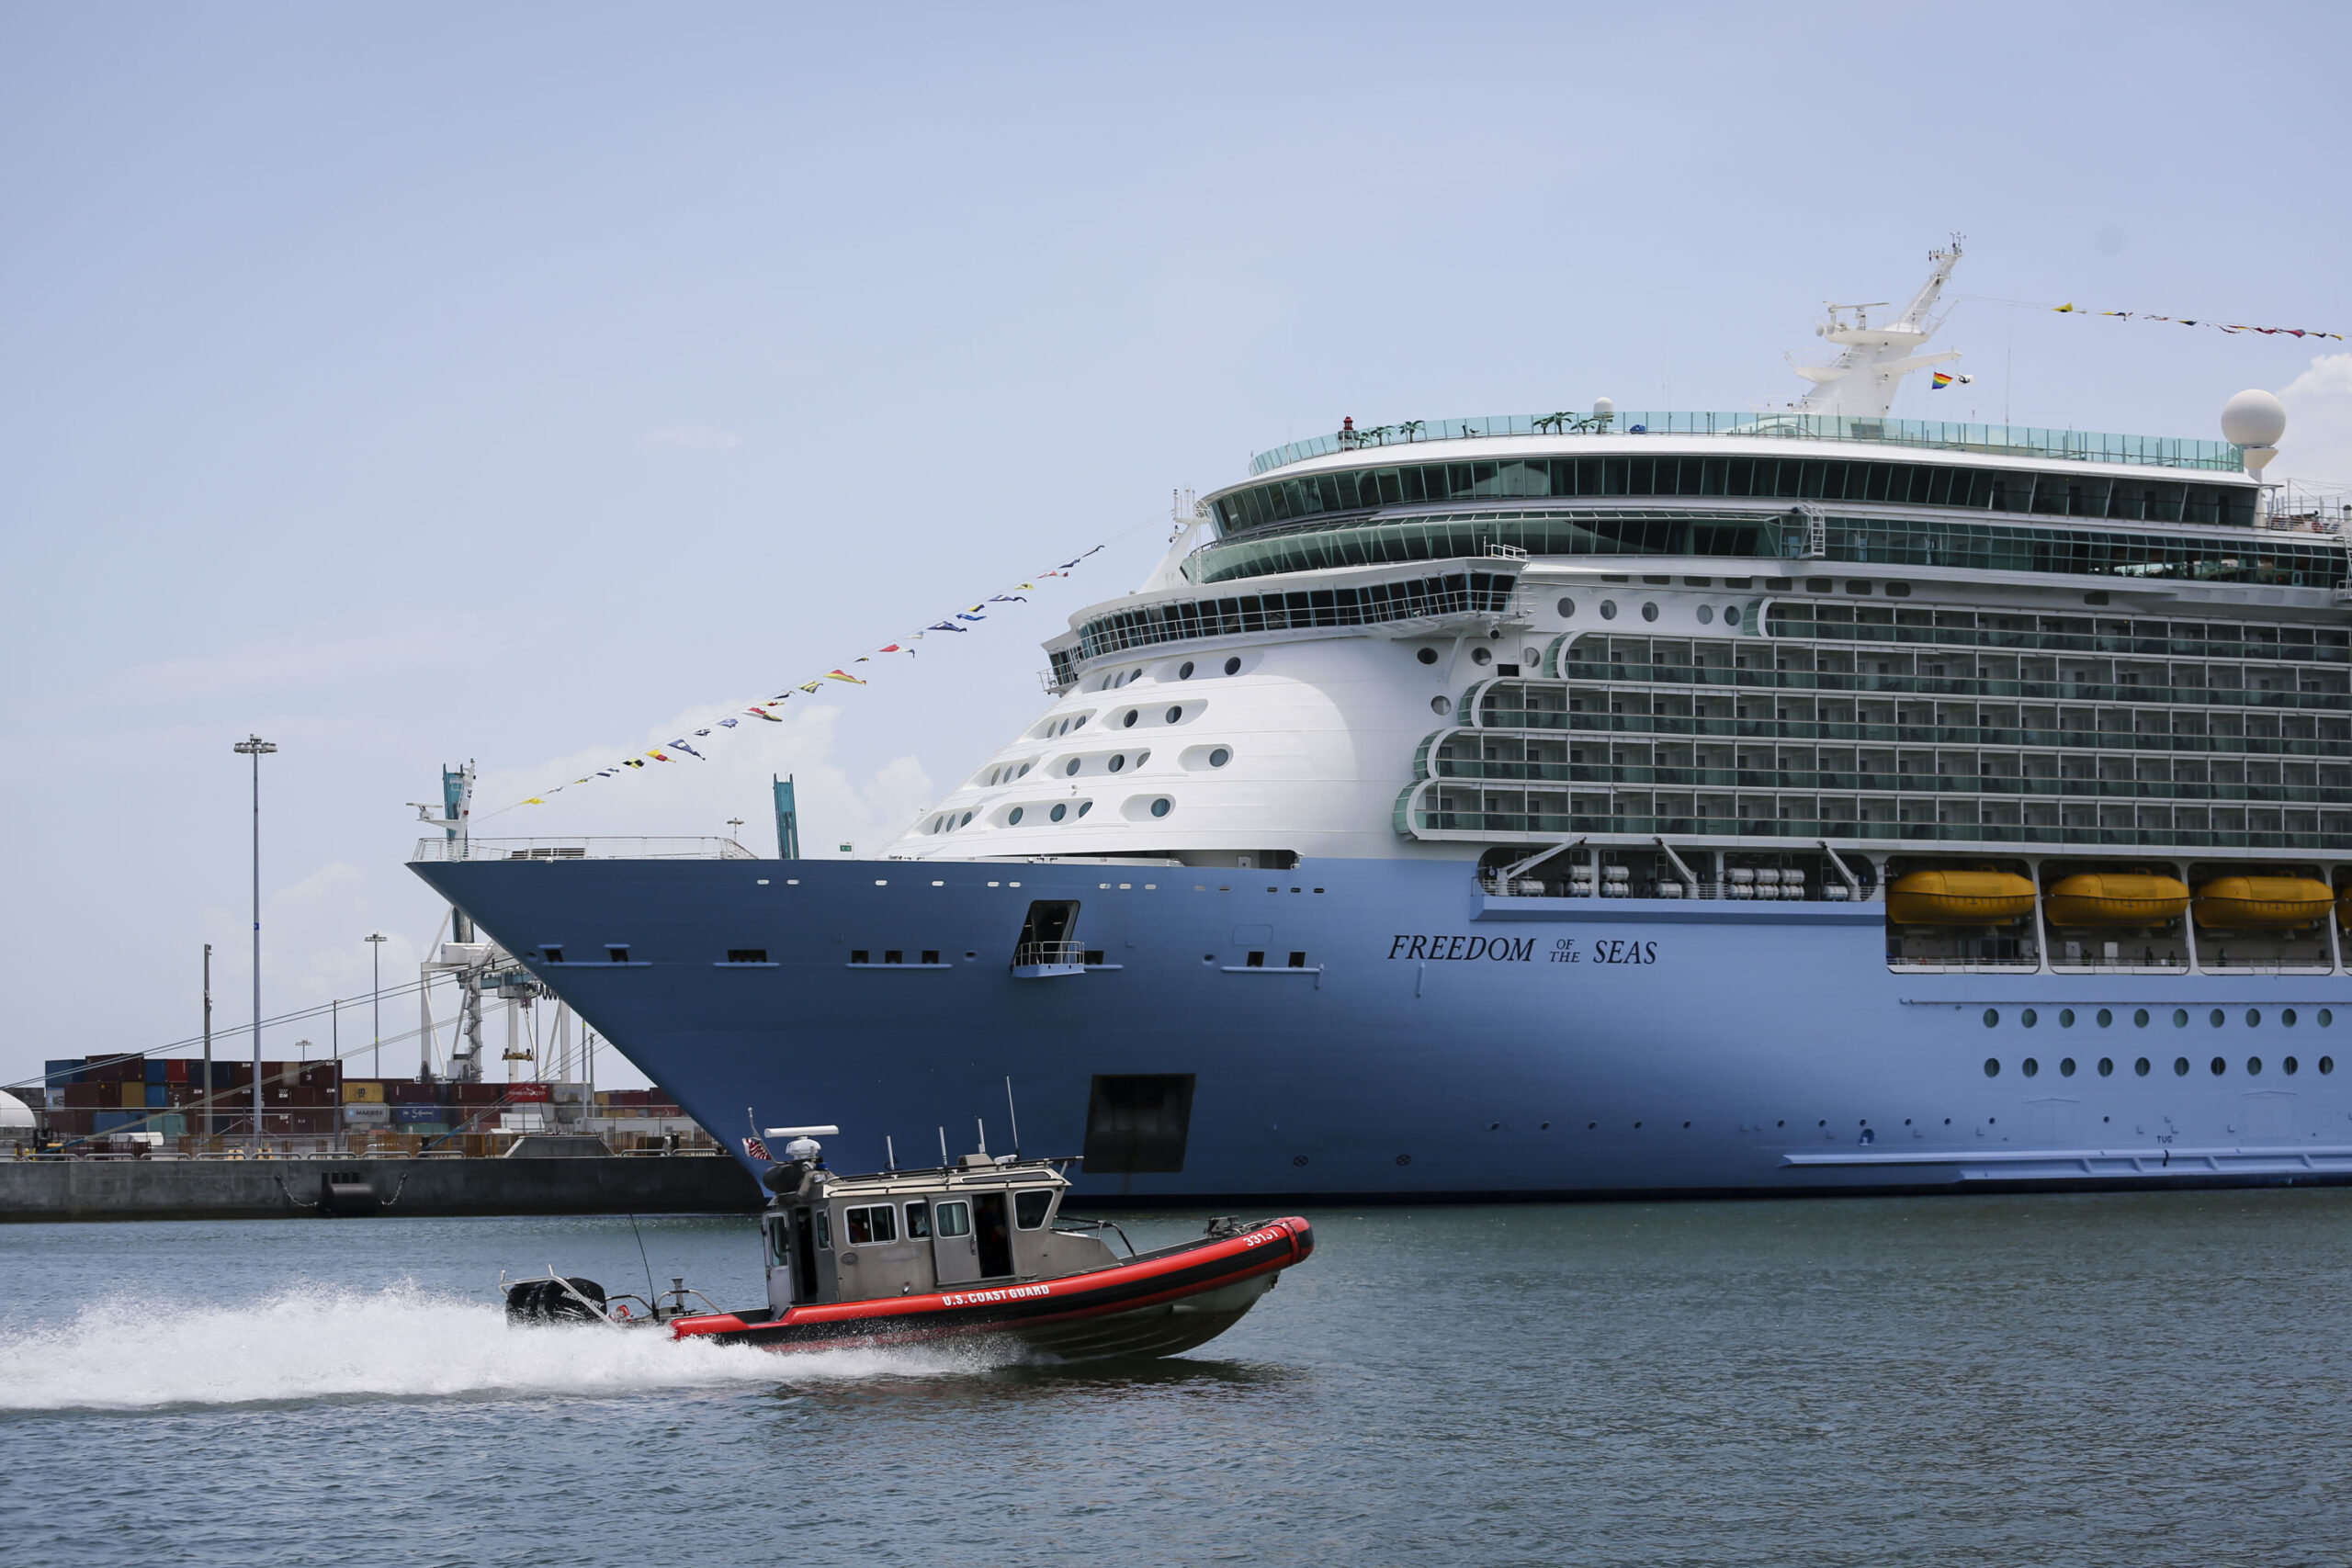 <i>Eva Marie Uzcategui/Bloomberg/Getty Images</i><br/>A federal court has temporarily blocked a lower court's ruling and will allow the Centers for Disease Control and Prevention to continue to implement safety protocols on the cruise industry.